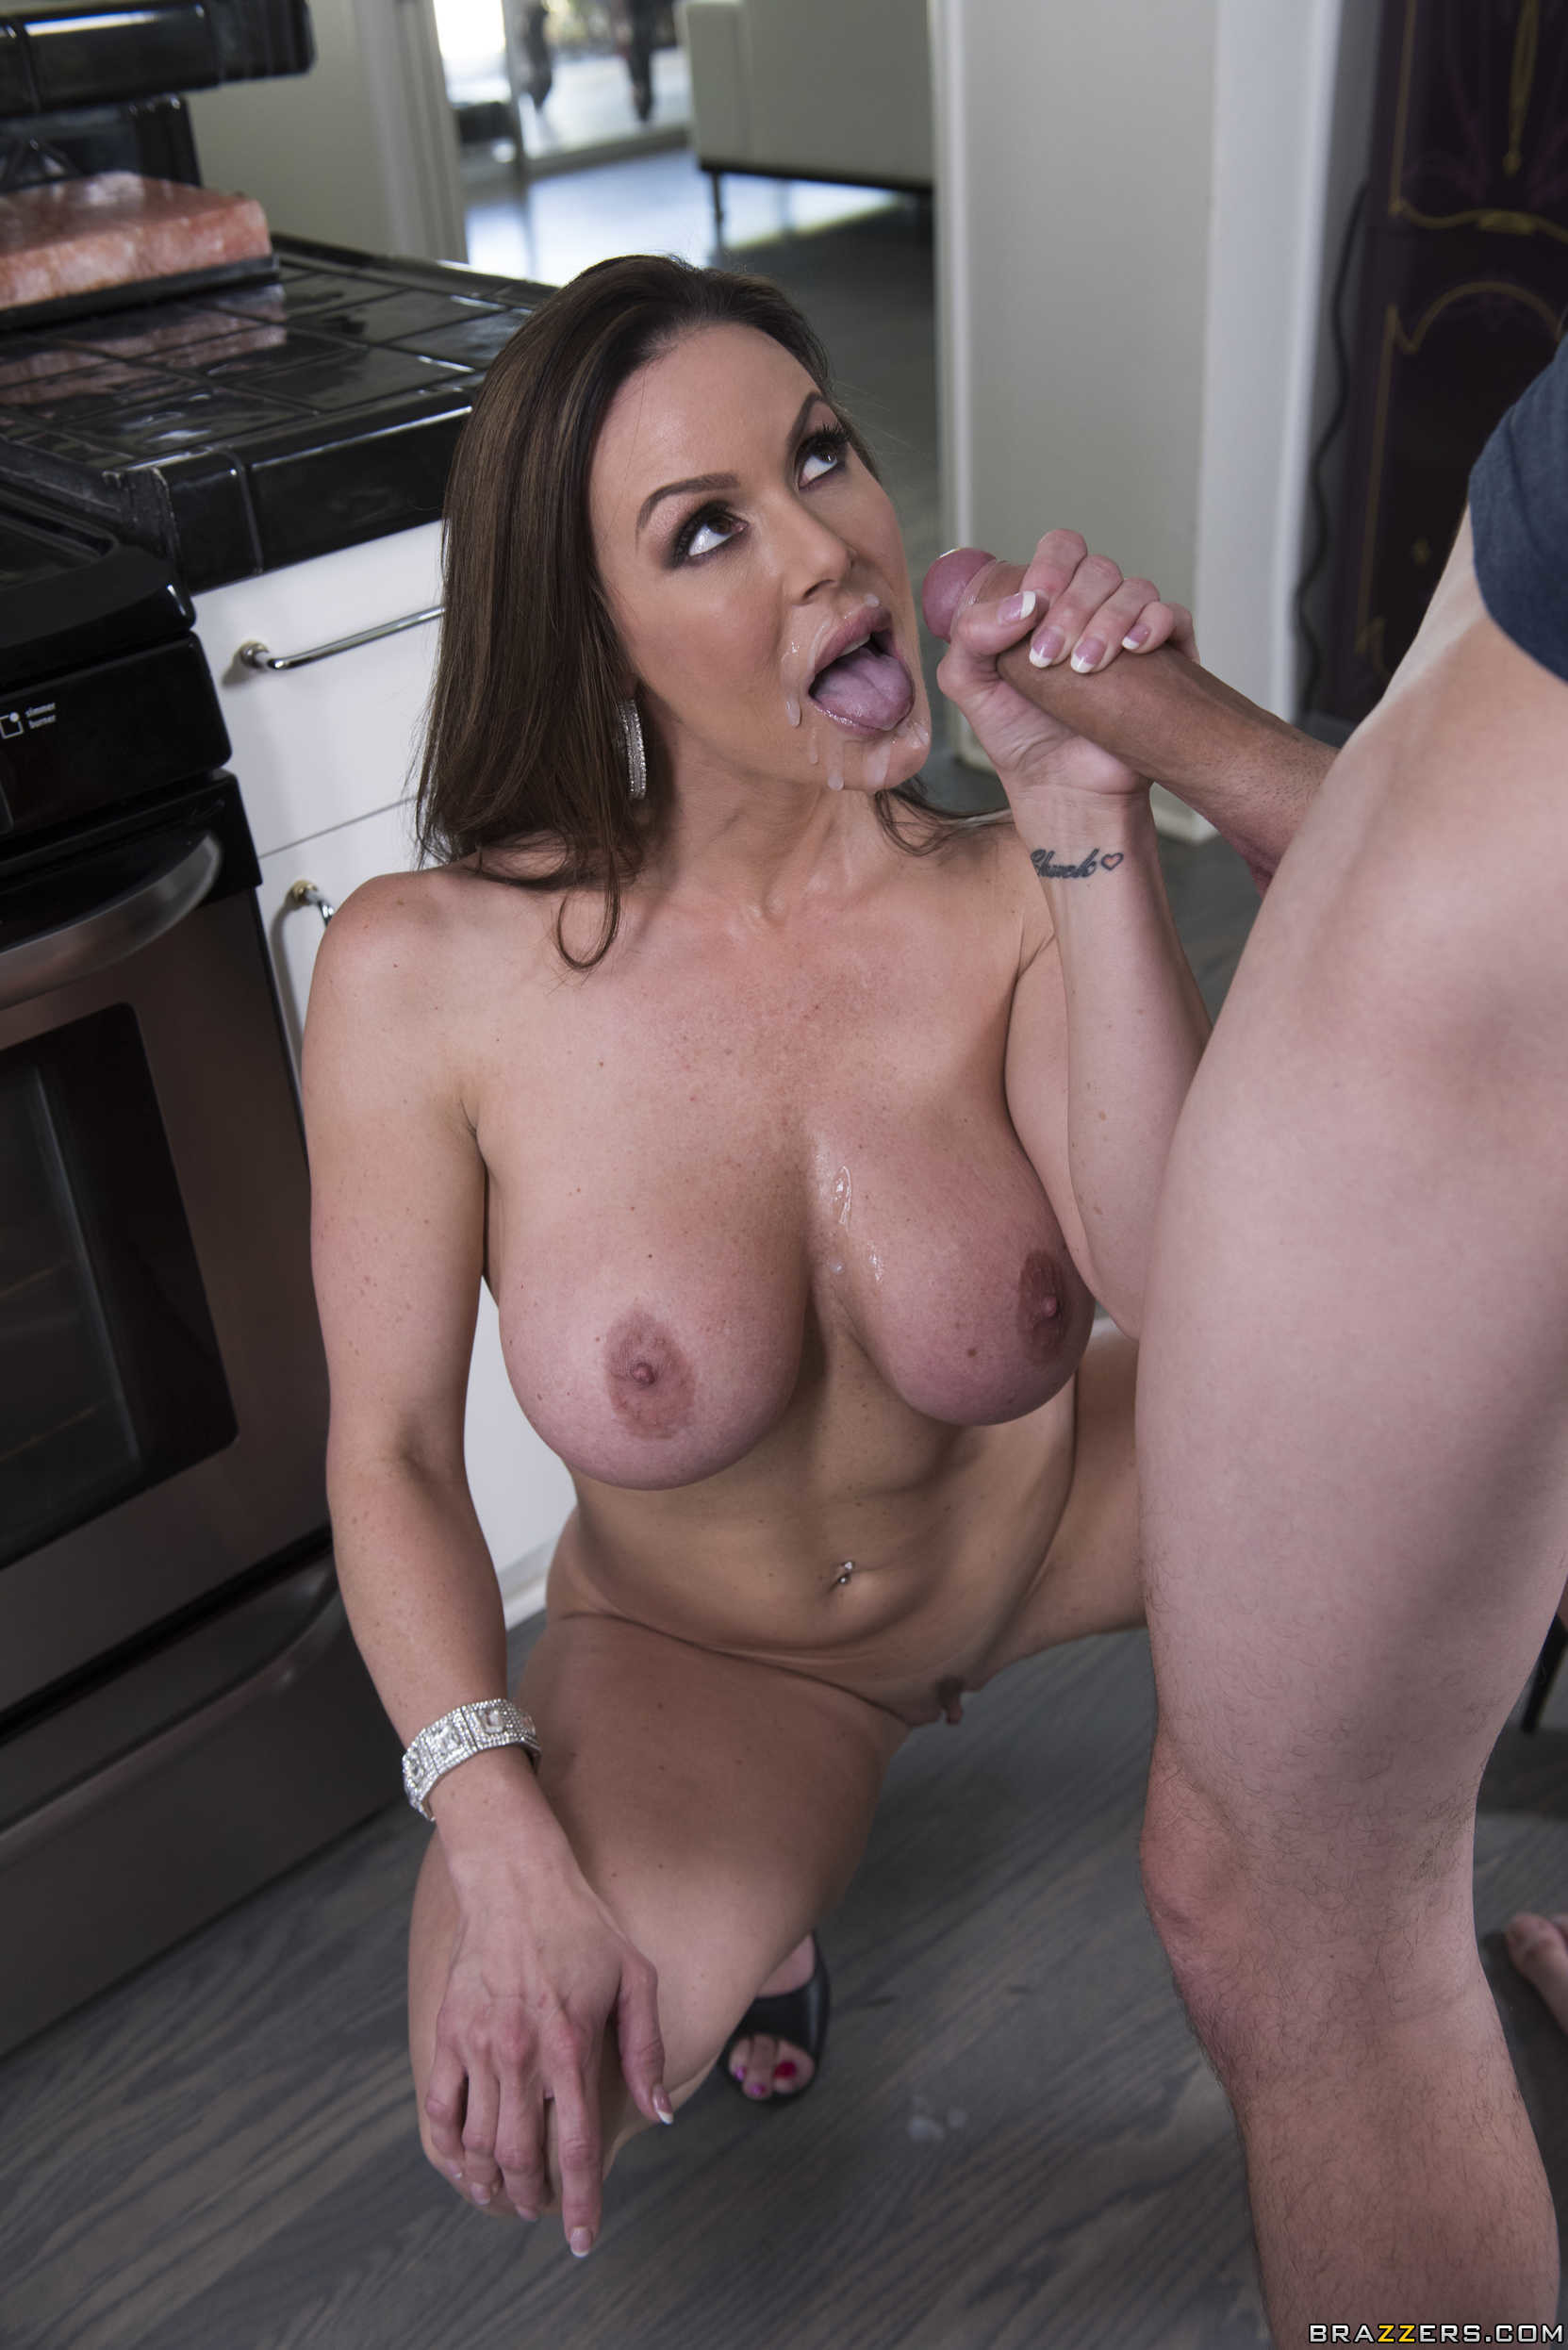 Wife Stories Porn